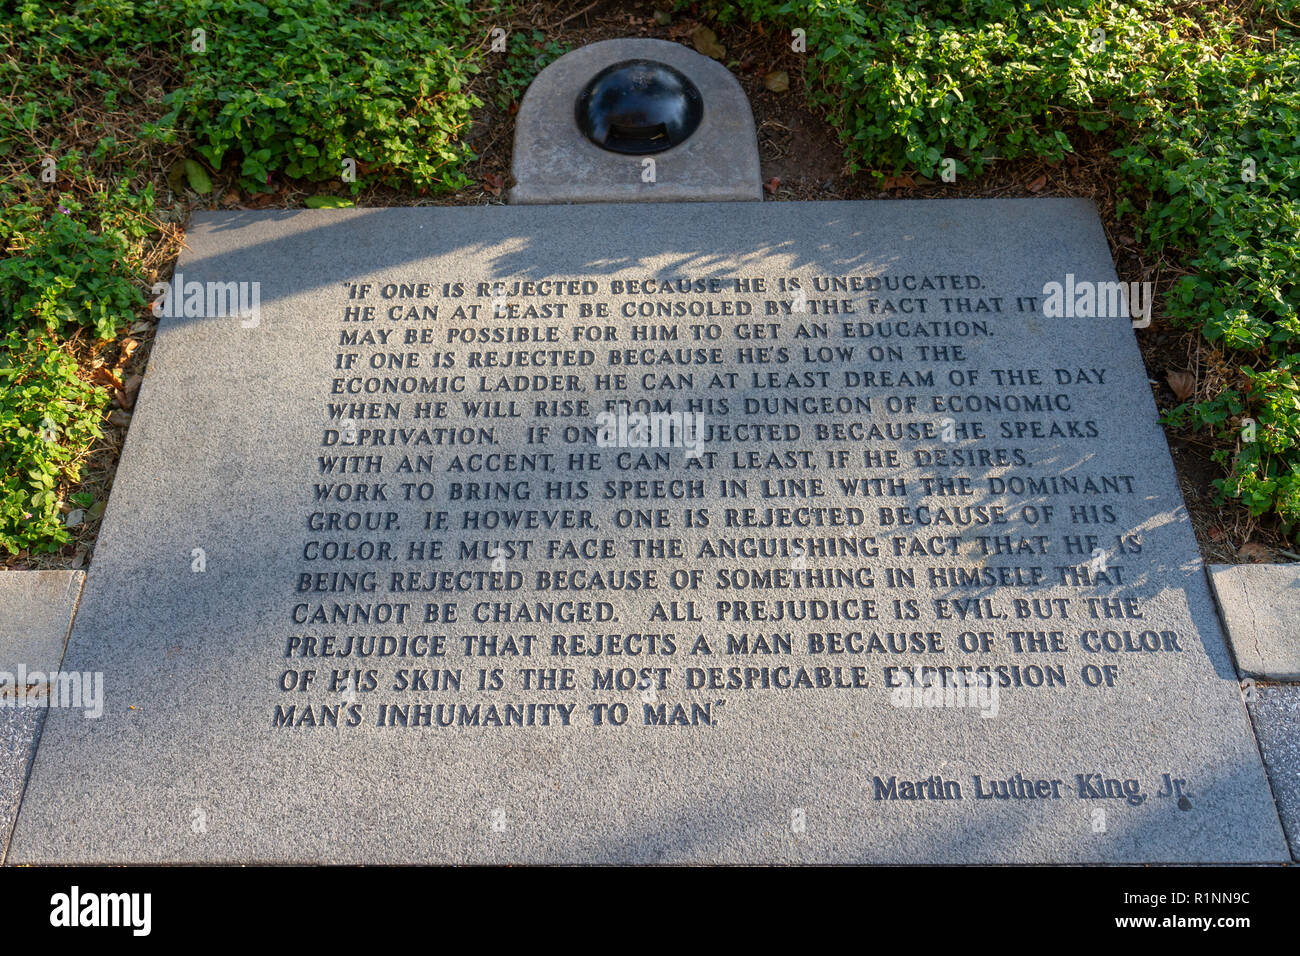 Quotation from Martin Luther King jr on Martin Luther King Promenade, San Diego, California, United States. - Stock Image